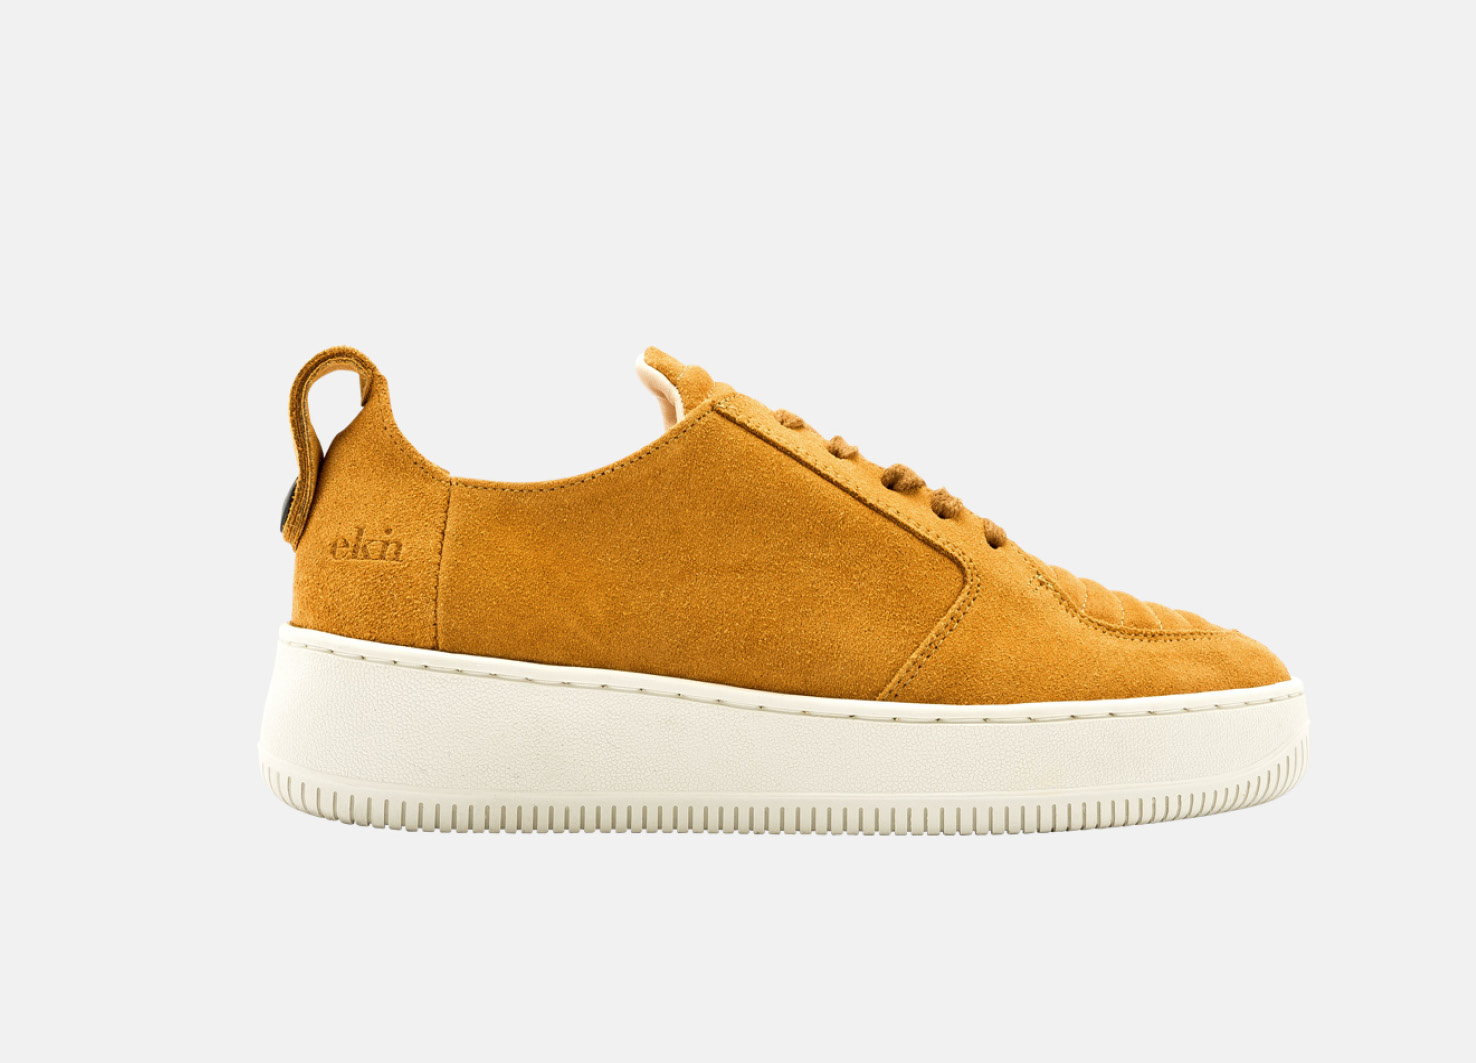 Ethical and sustainable sneakers – EKN